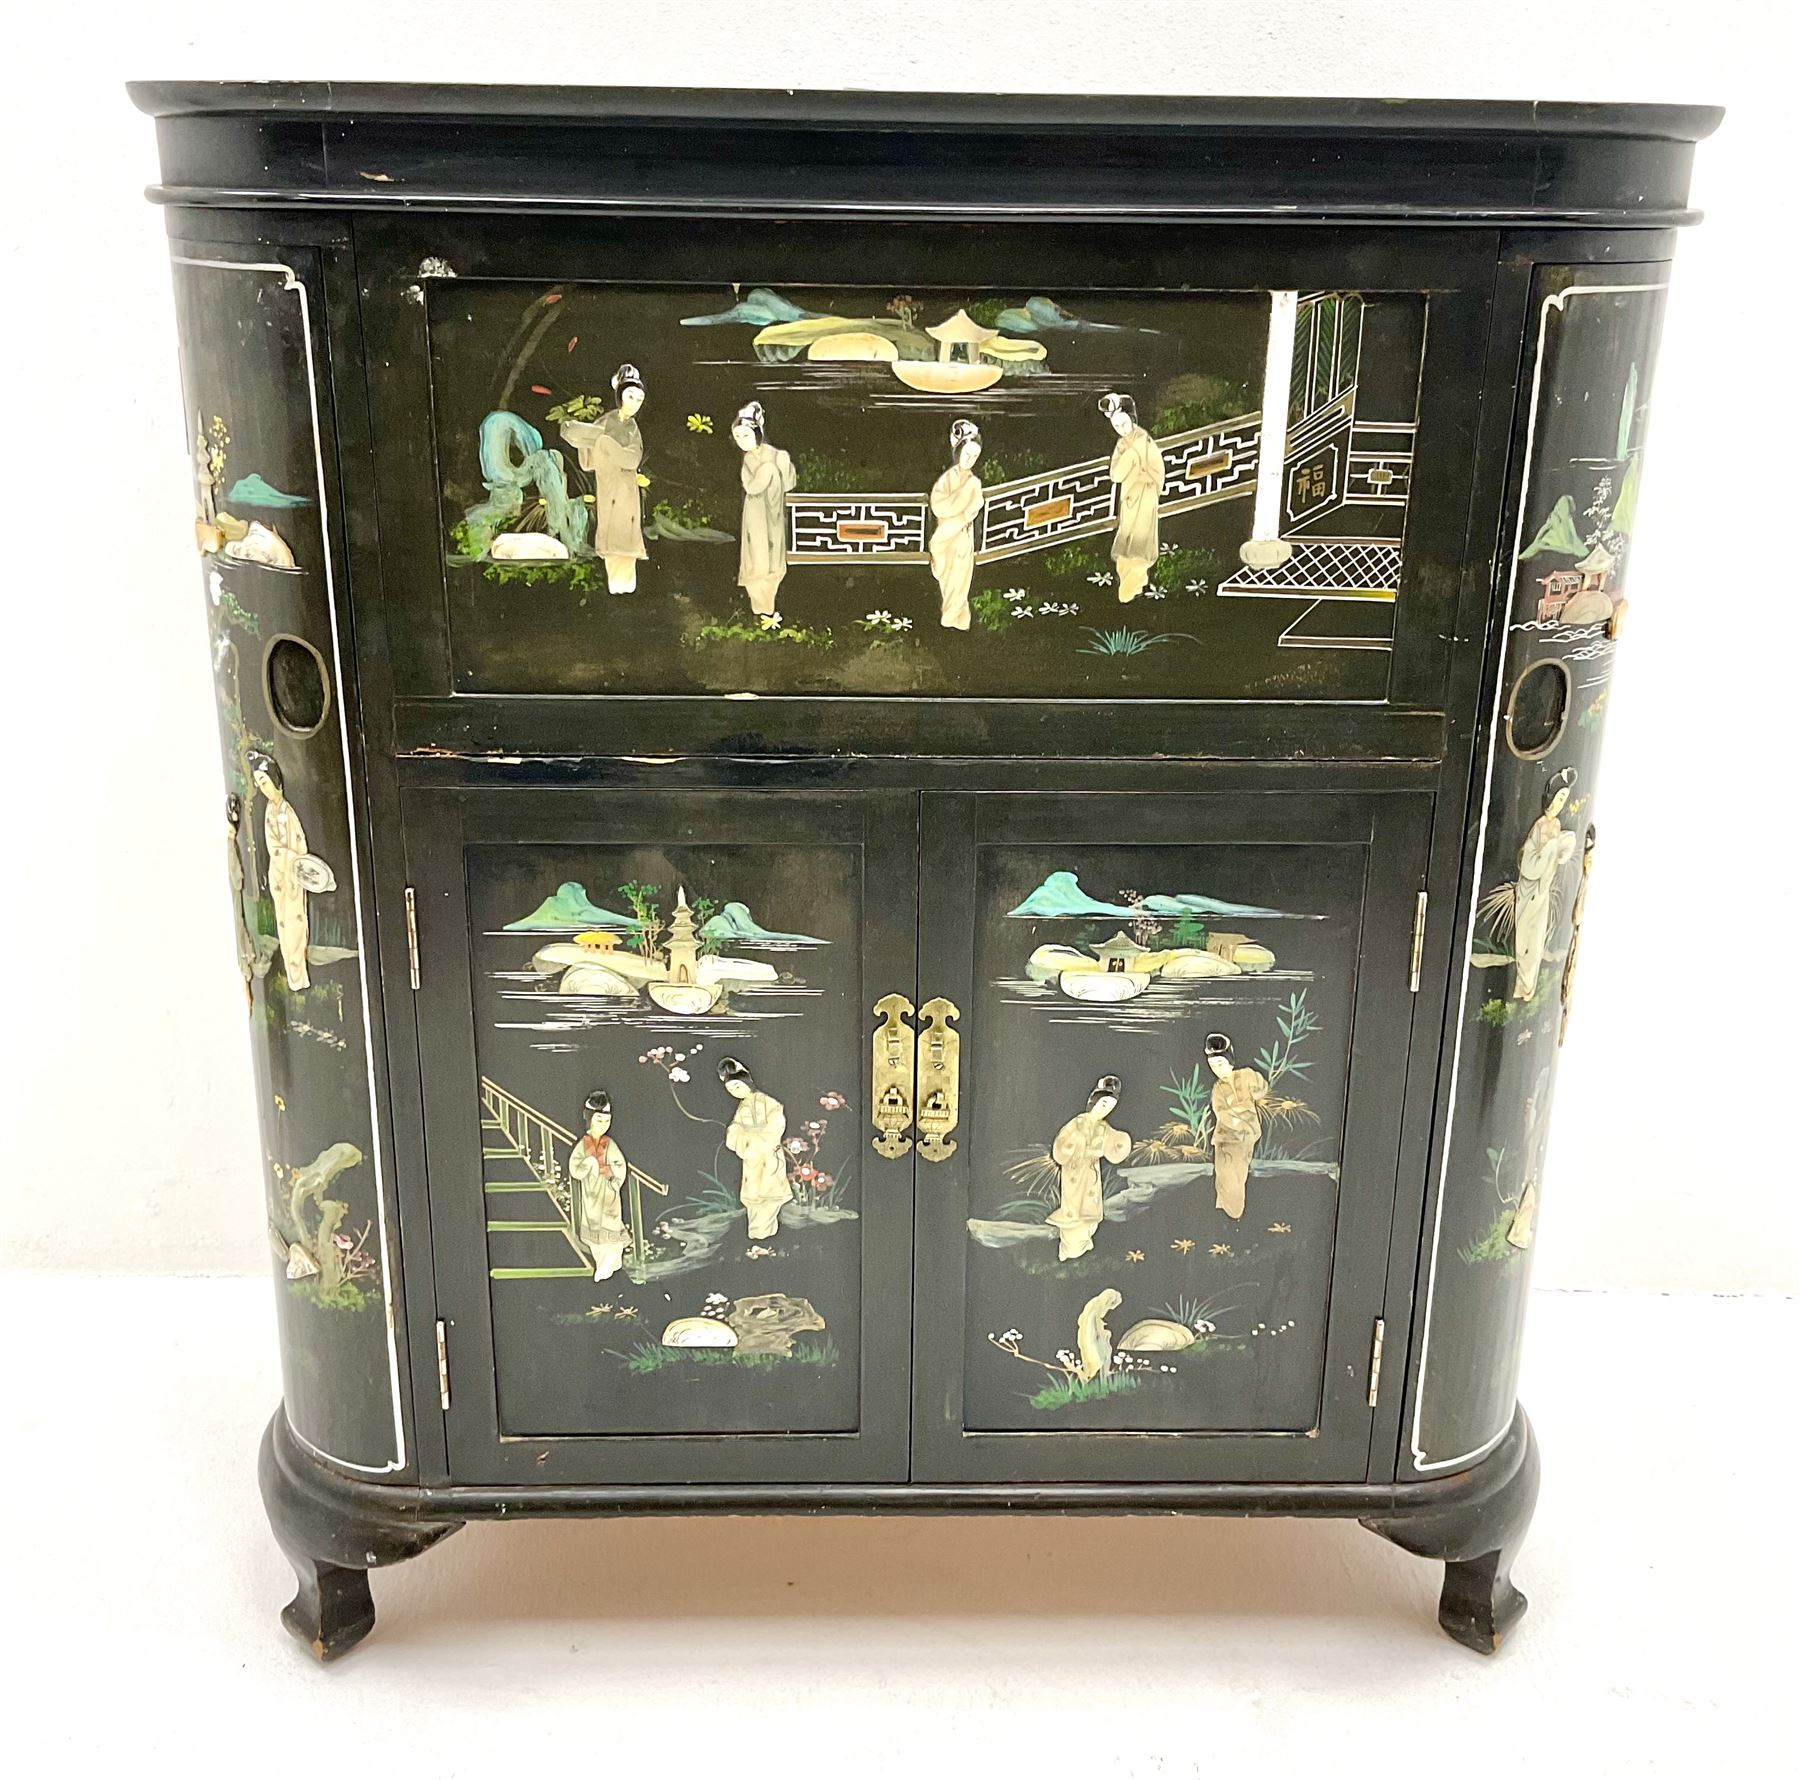 Hong Kong black lacquered cocktail cabinet with shibiyama style decoration of figures in a garden